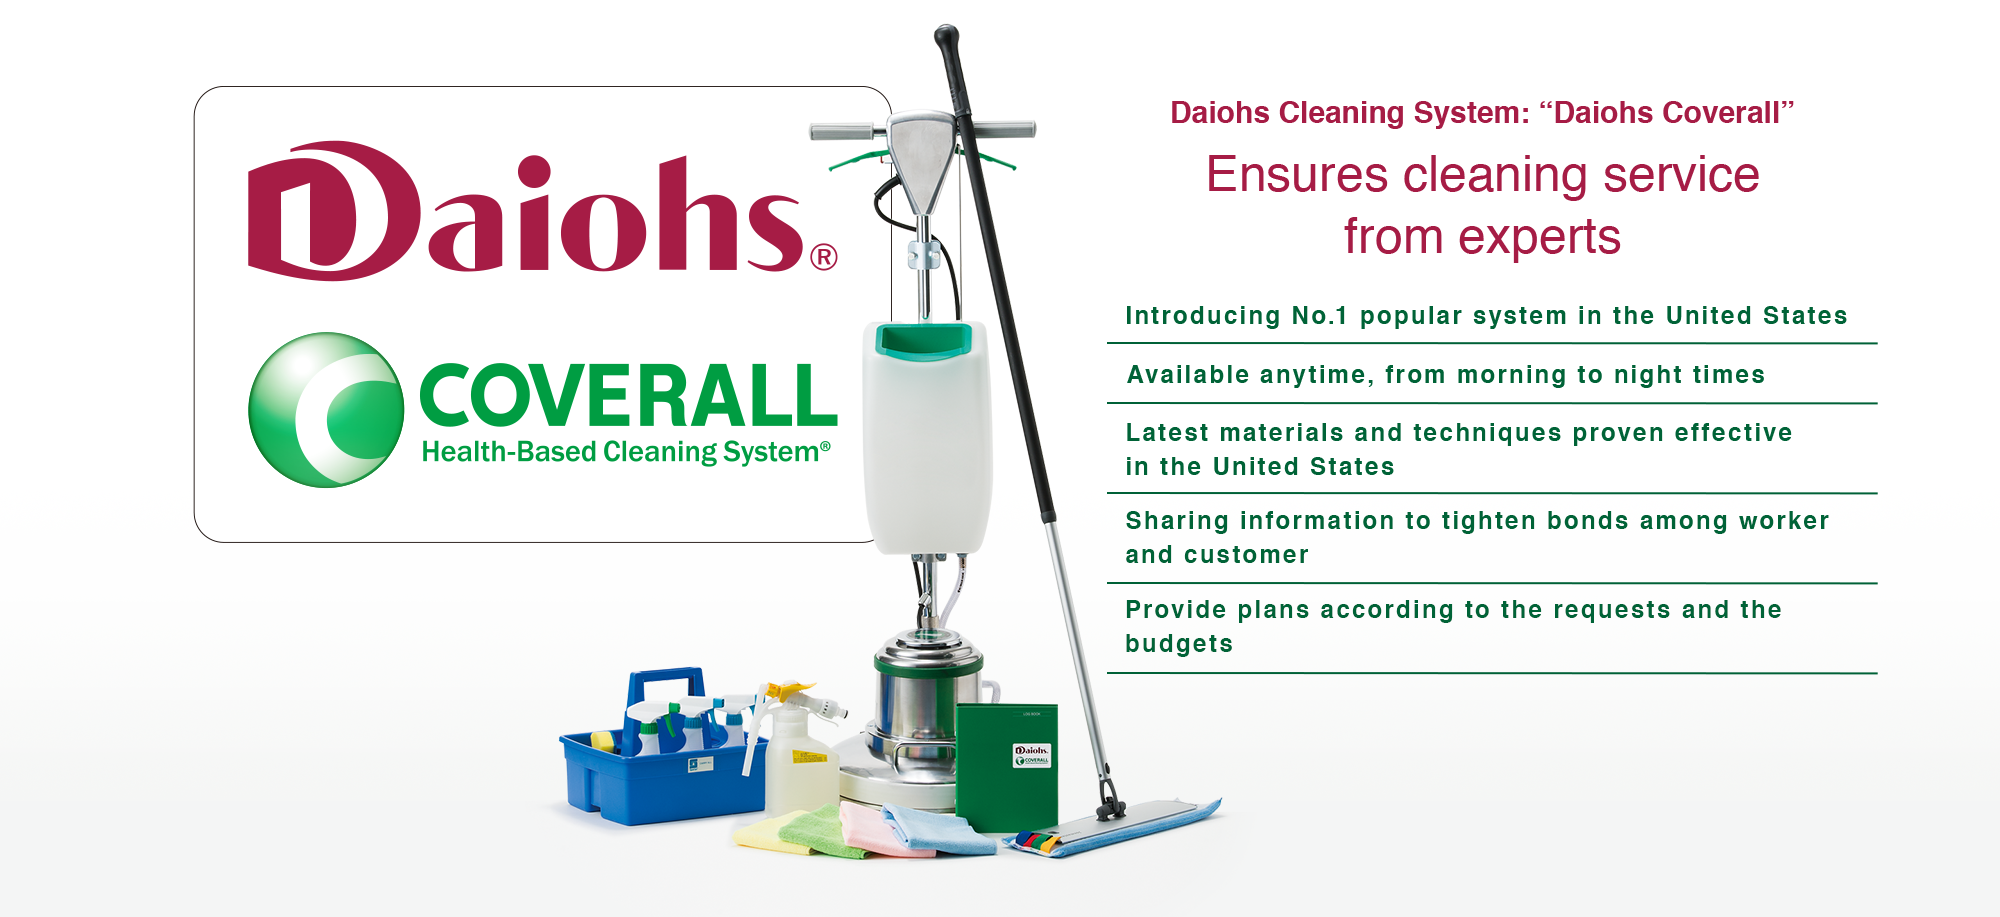 Daiohs Coverall Daiohs Cleaning System Coverall Ensures cleaning service from trained professionals ・Introducing No.1 popular system in the United States ・Available anytime, from morning to night times ・Latest materials and techniques proven effective in the United States ・Sharing information to tighten bonds among worker and customer ・Provide plans according to the requests and the budgets